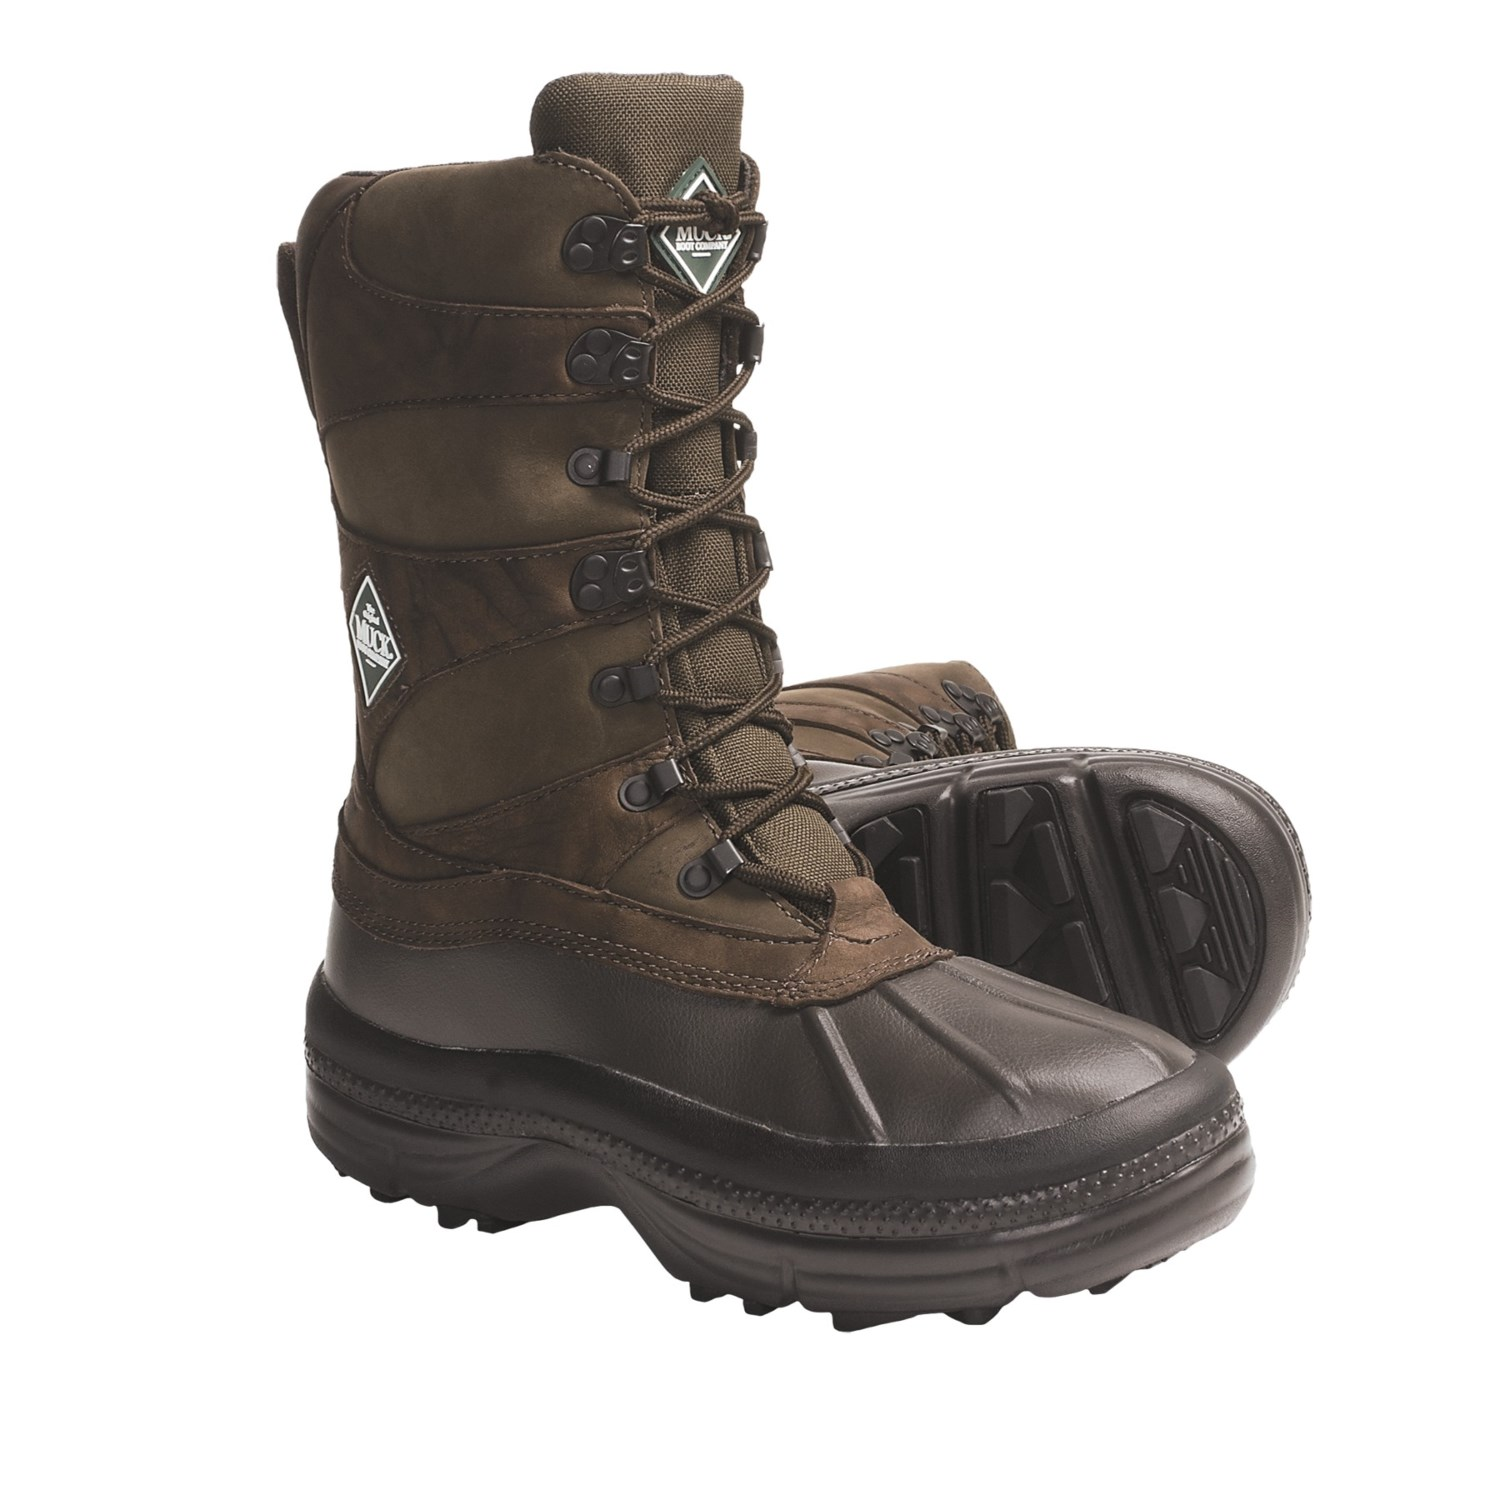 Muck Boot Company Himalayas Winter Boots For Men 4410f